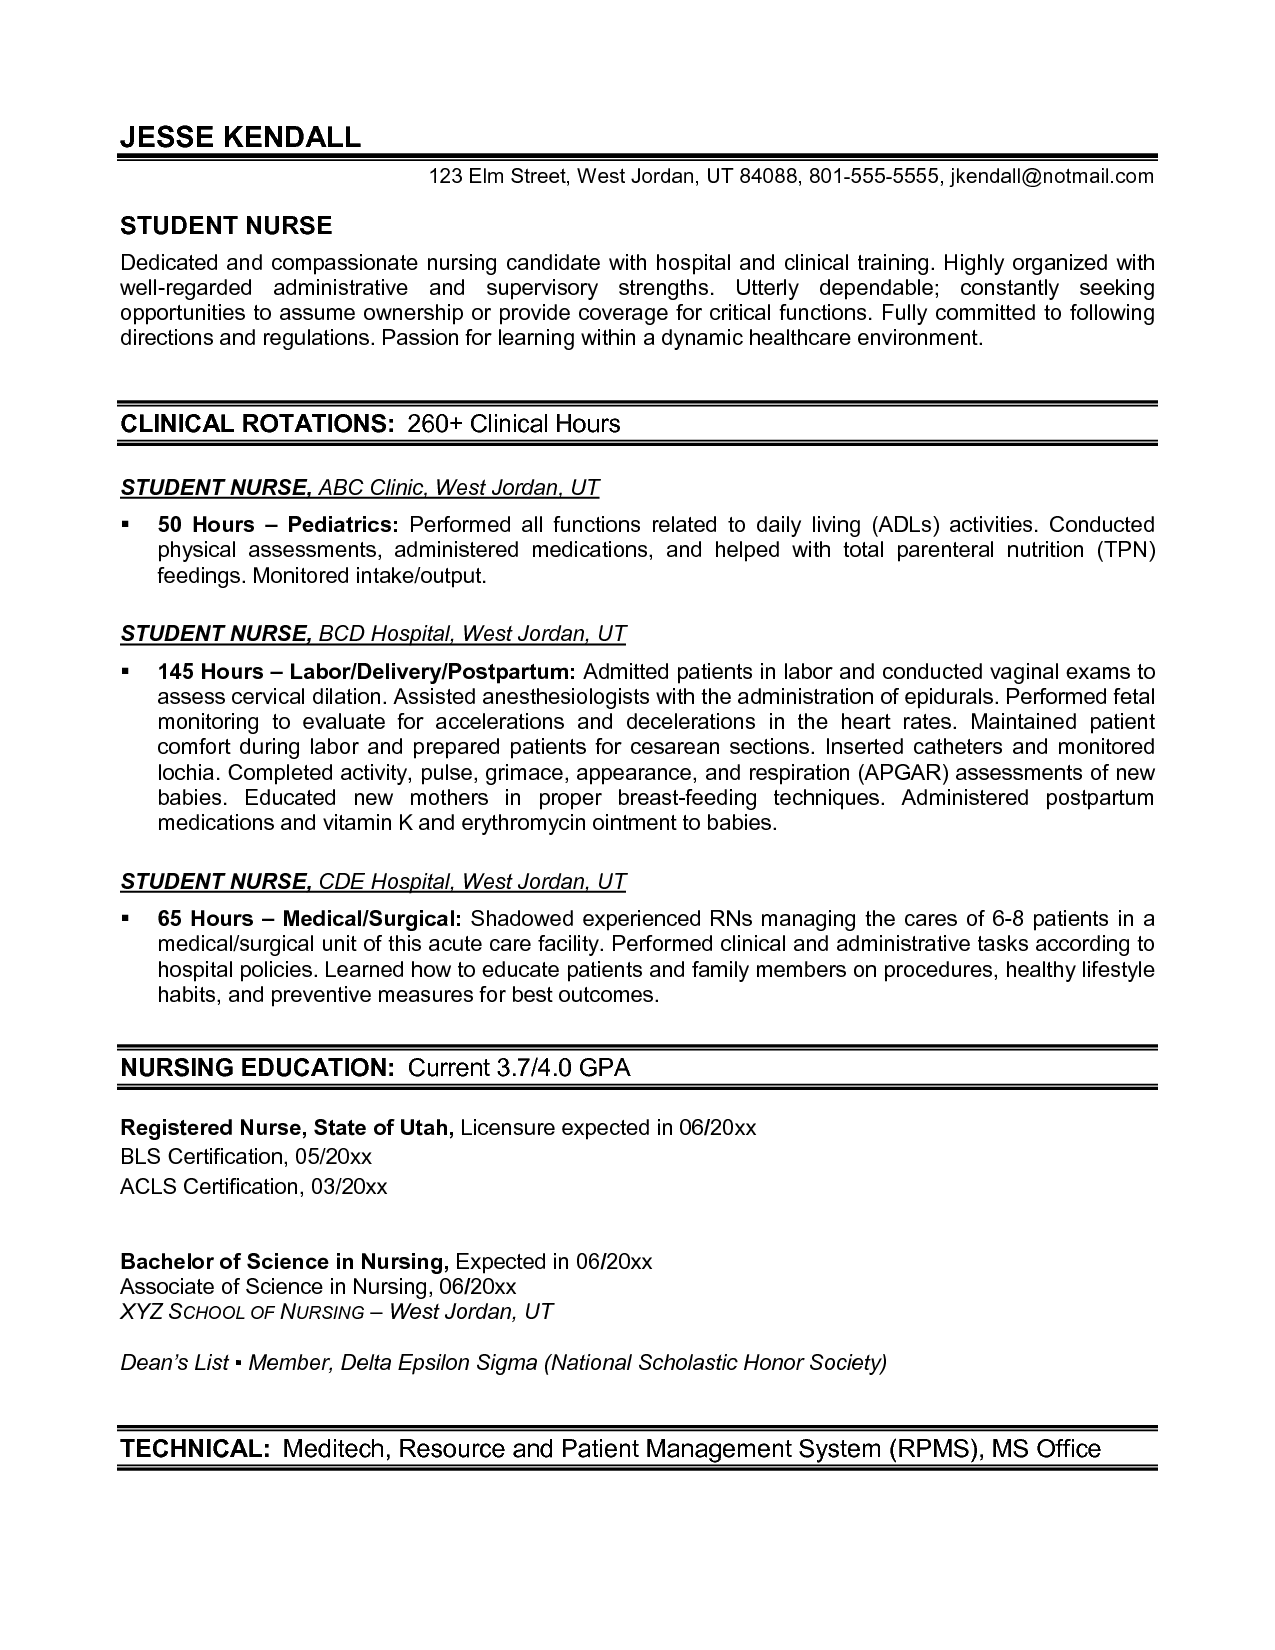 nursing resume template best templateresume templates cover letter examples - Resume Cover Letter Examples For Nurses